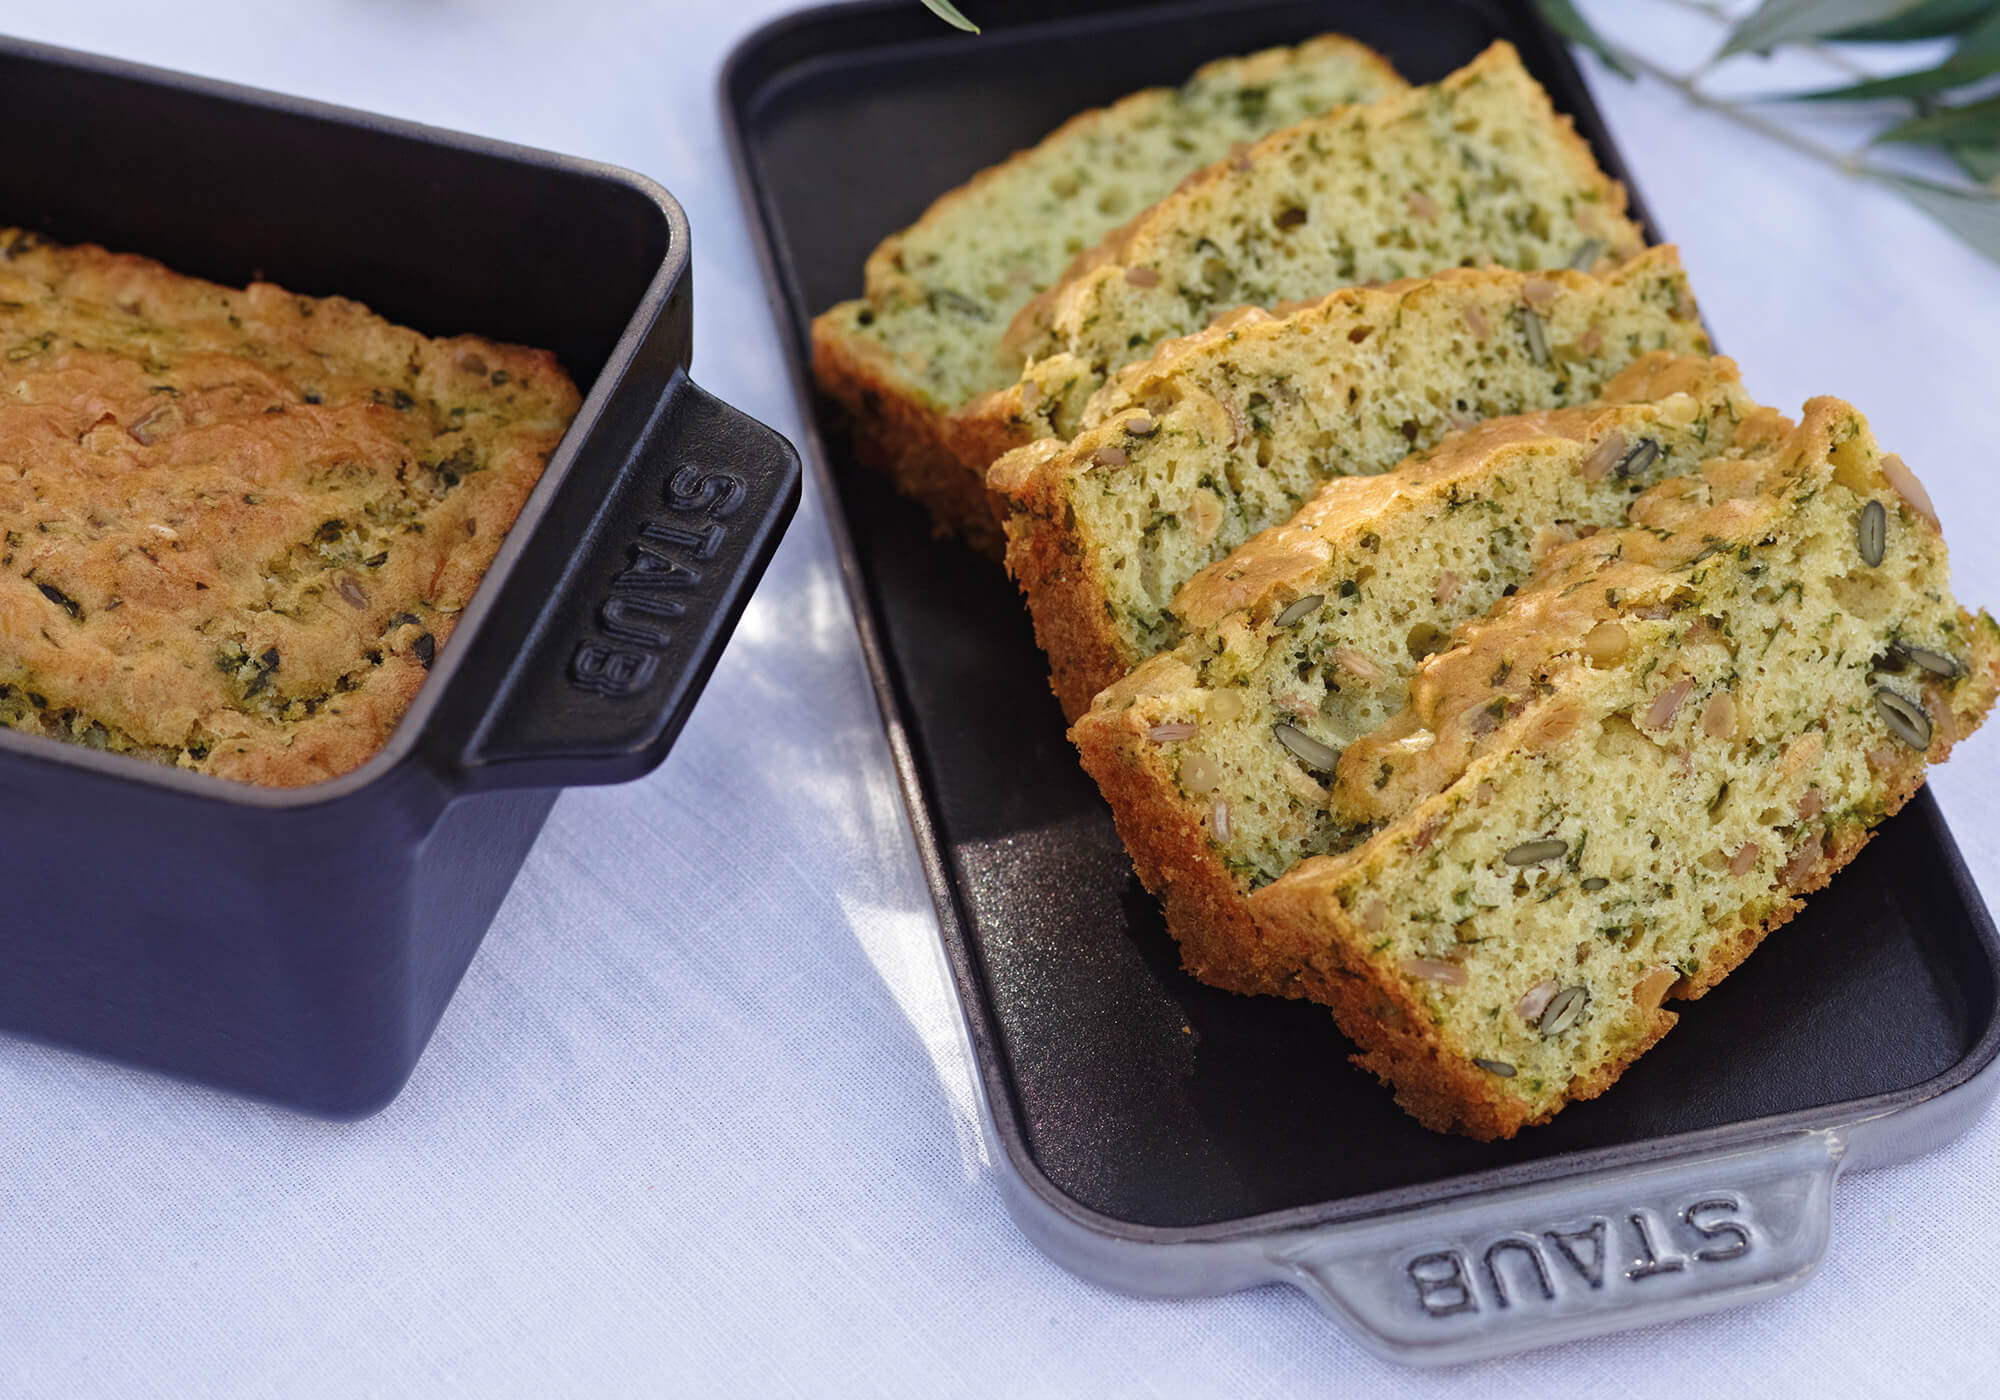 Wholegrain bread cake with basil